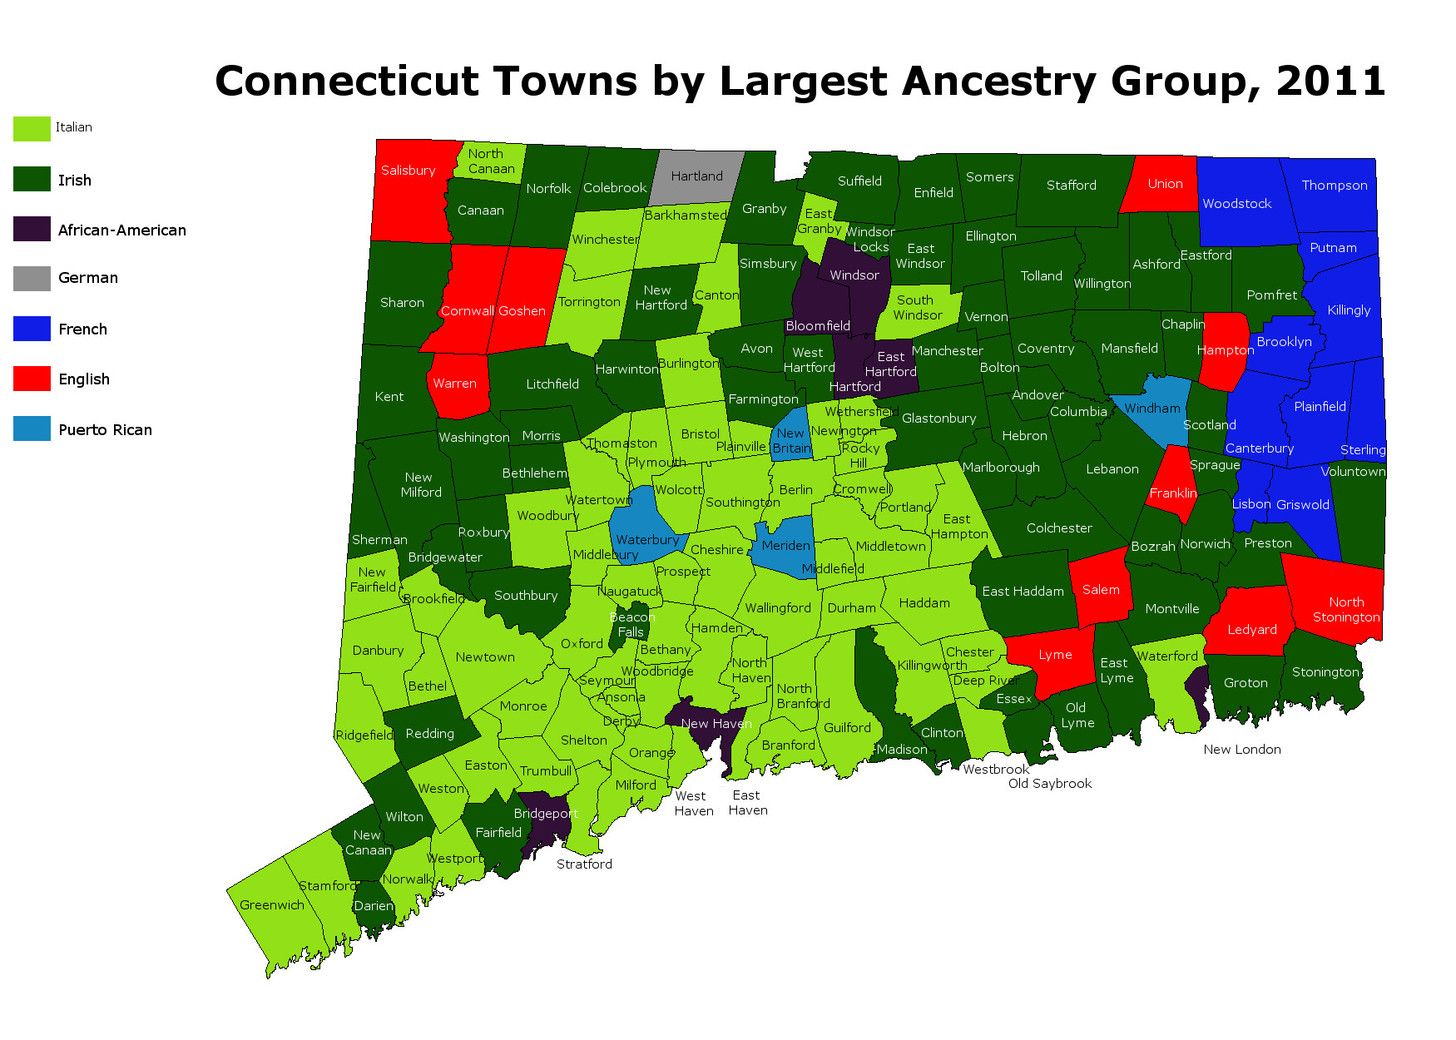 OC Modern Map Of CT Towns By Largest Ancestry Group Xpost From - Map of ct towns